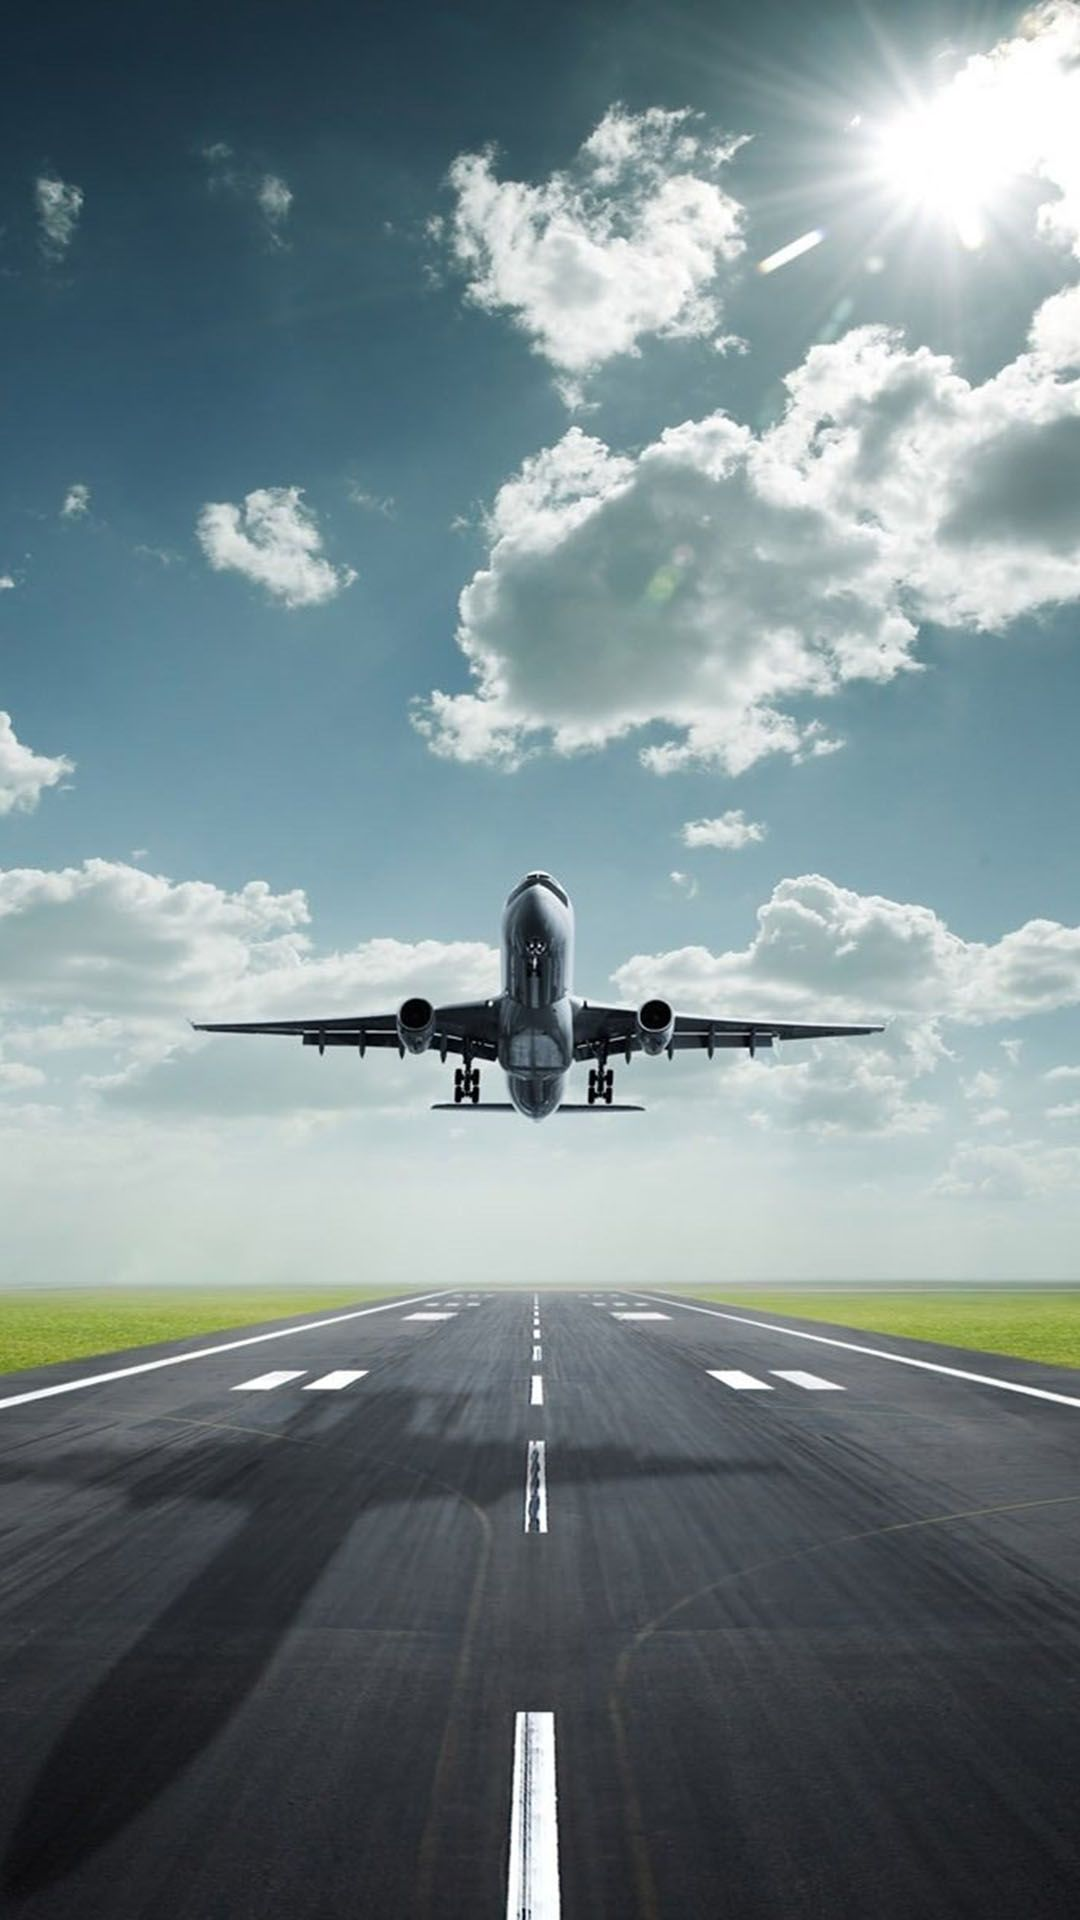 airplane takeoff airport runway sky 1080x1920 (With images